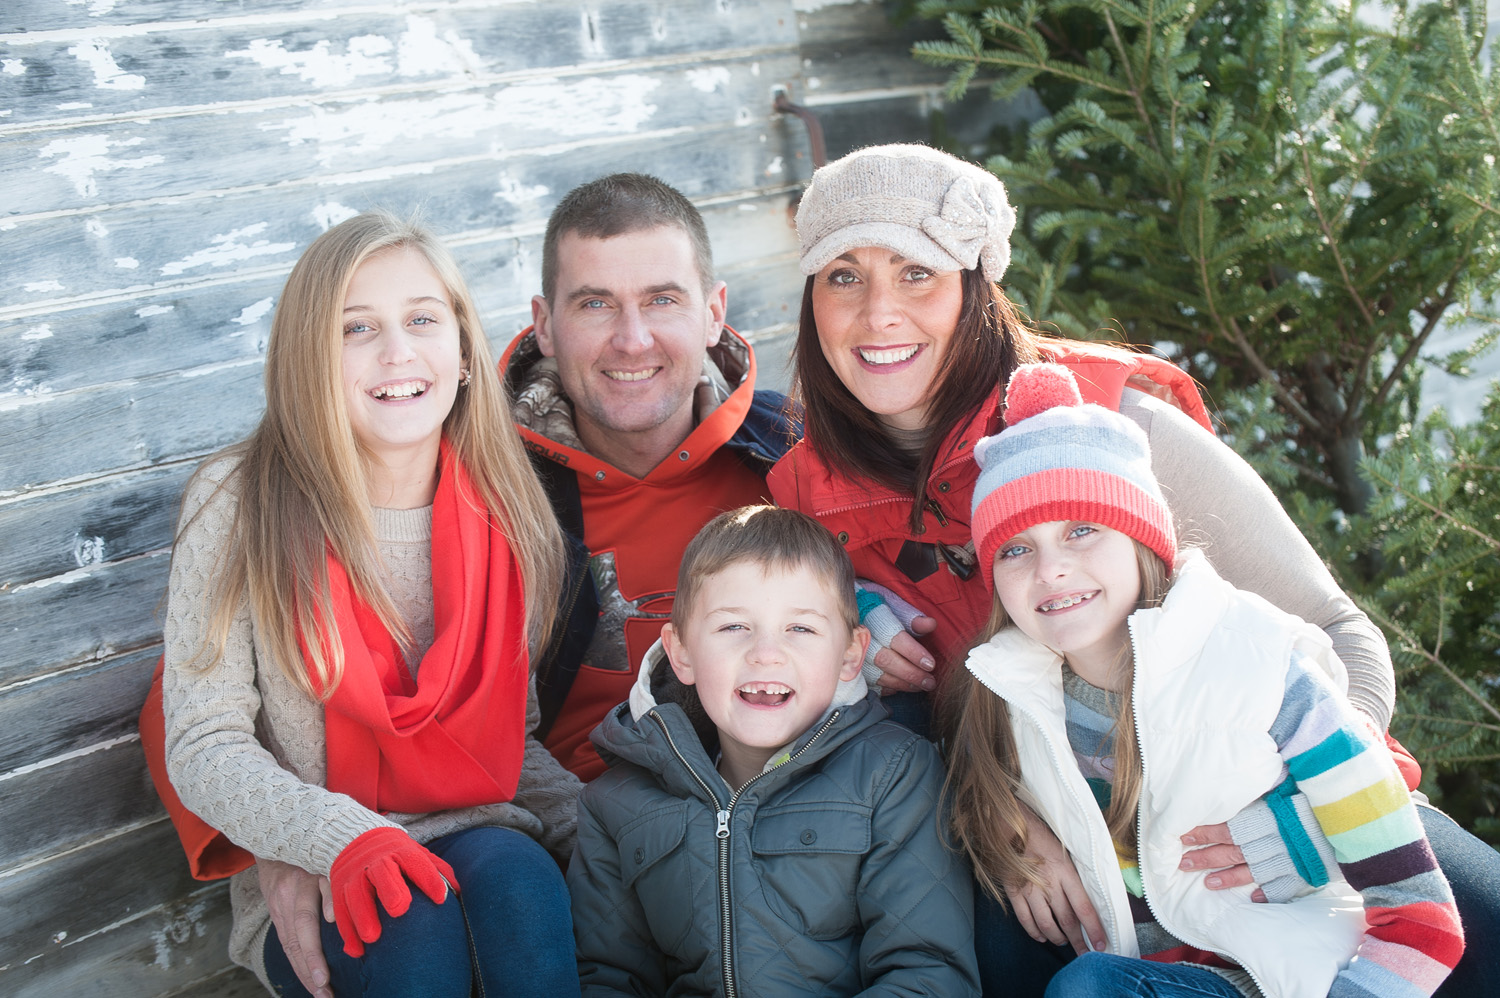 A family gathers for photos near the rustic barn during their outdoor Christmas photo session at The Gardens of Castle Rock in Northfield, MN